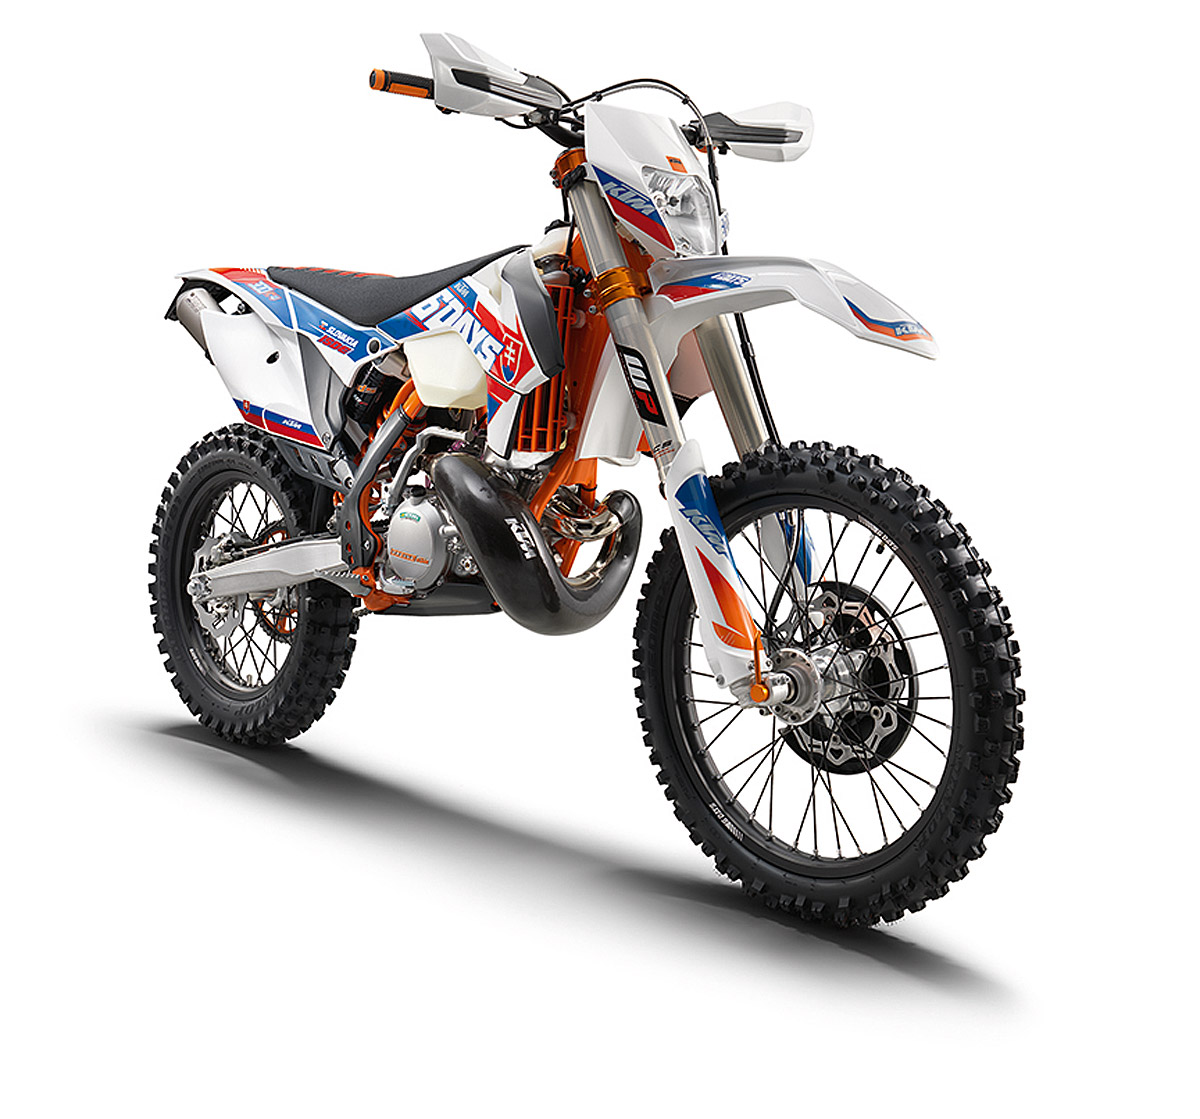 The Weekly Feed Sept 2 2015 Dirt Bike Magazine Camel Honda Pit Ktm Is Bringing Out 3 Models All Six Day Adorned With Special Graphics Along Some Parts To Set Them Apart From Run Of Mill